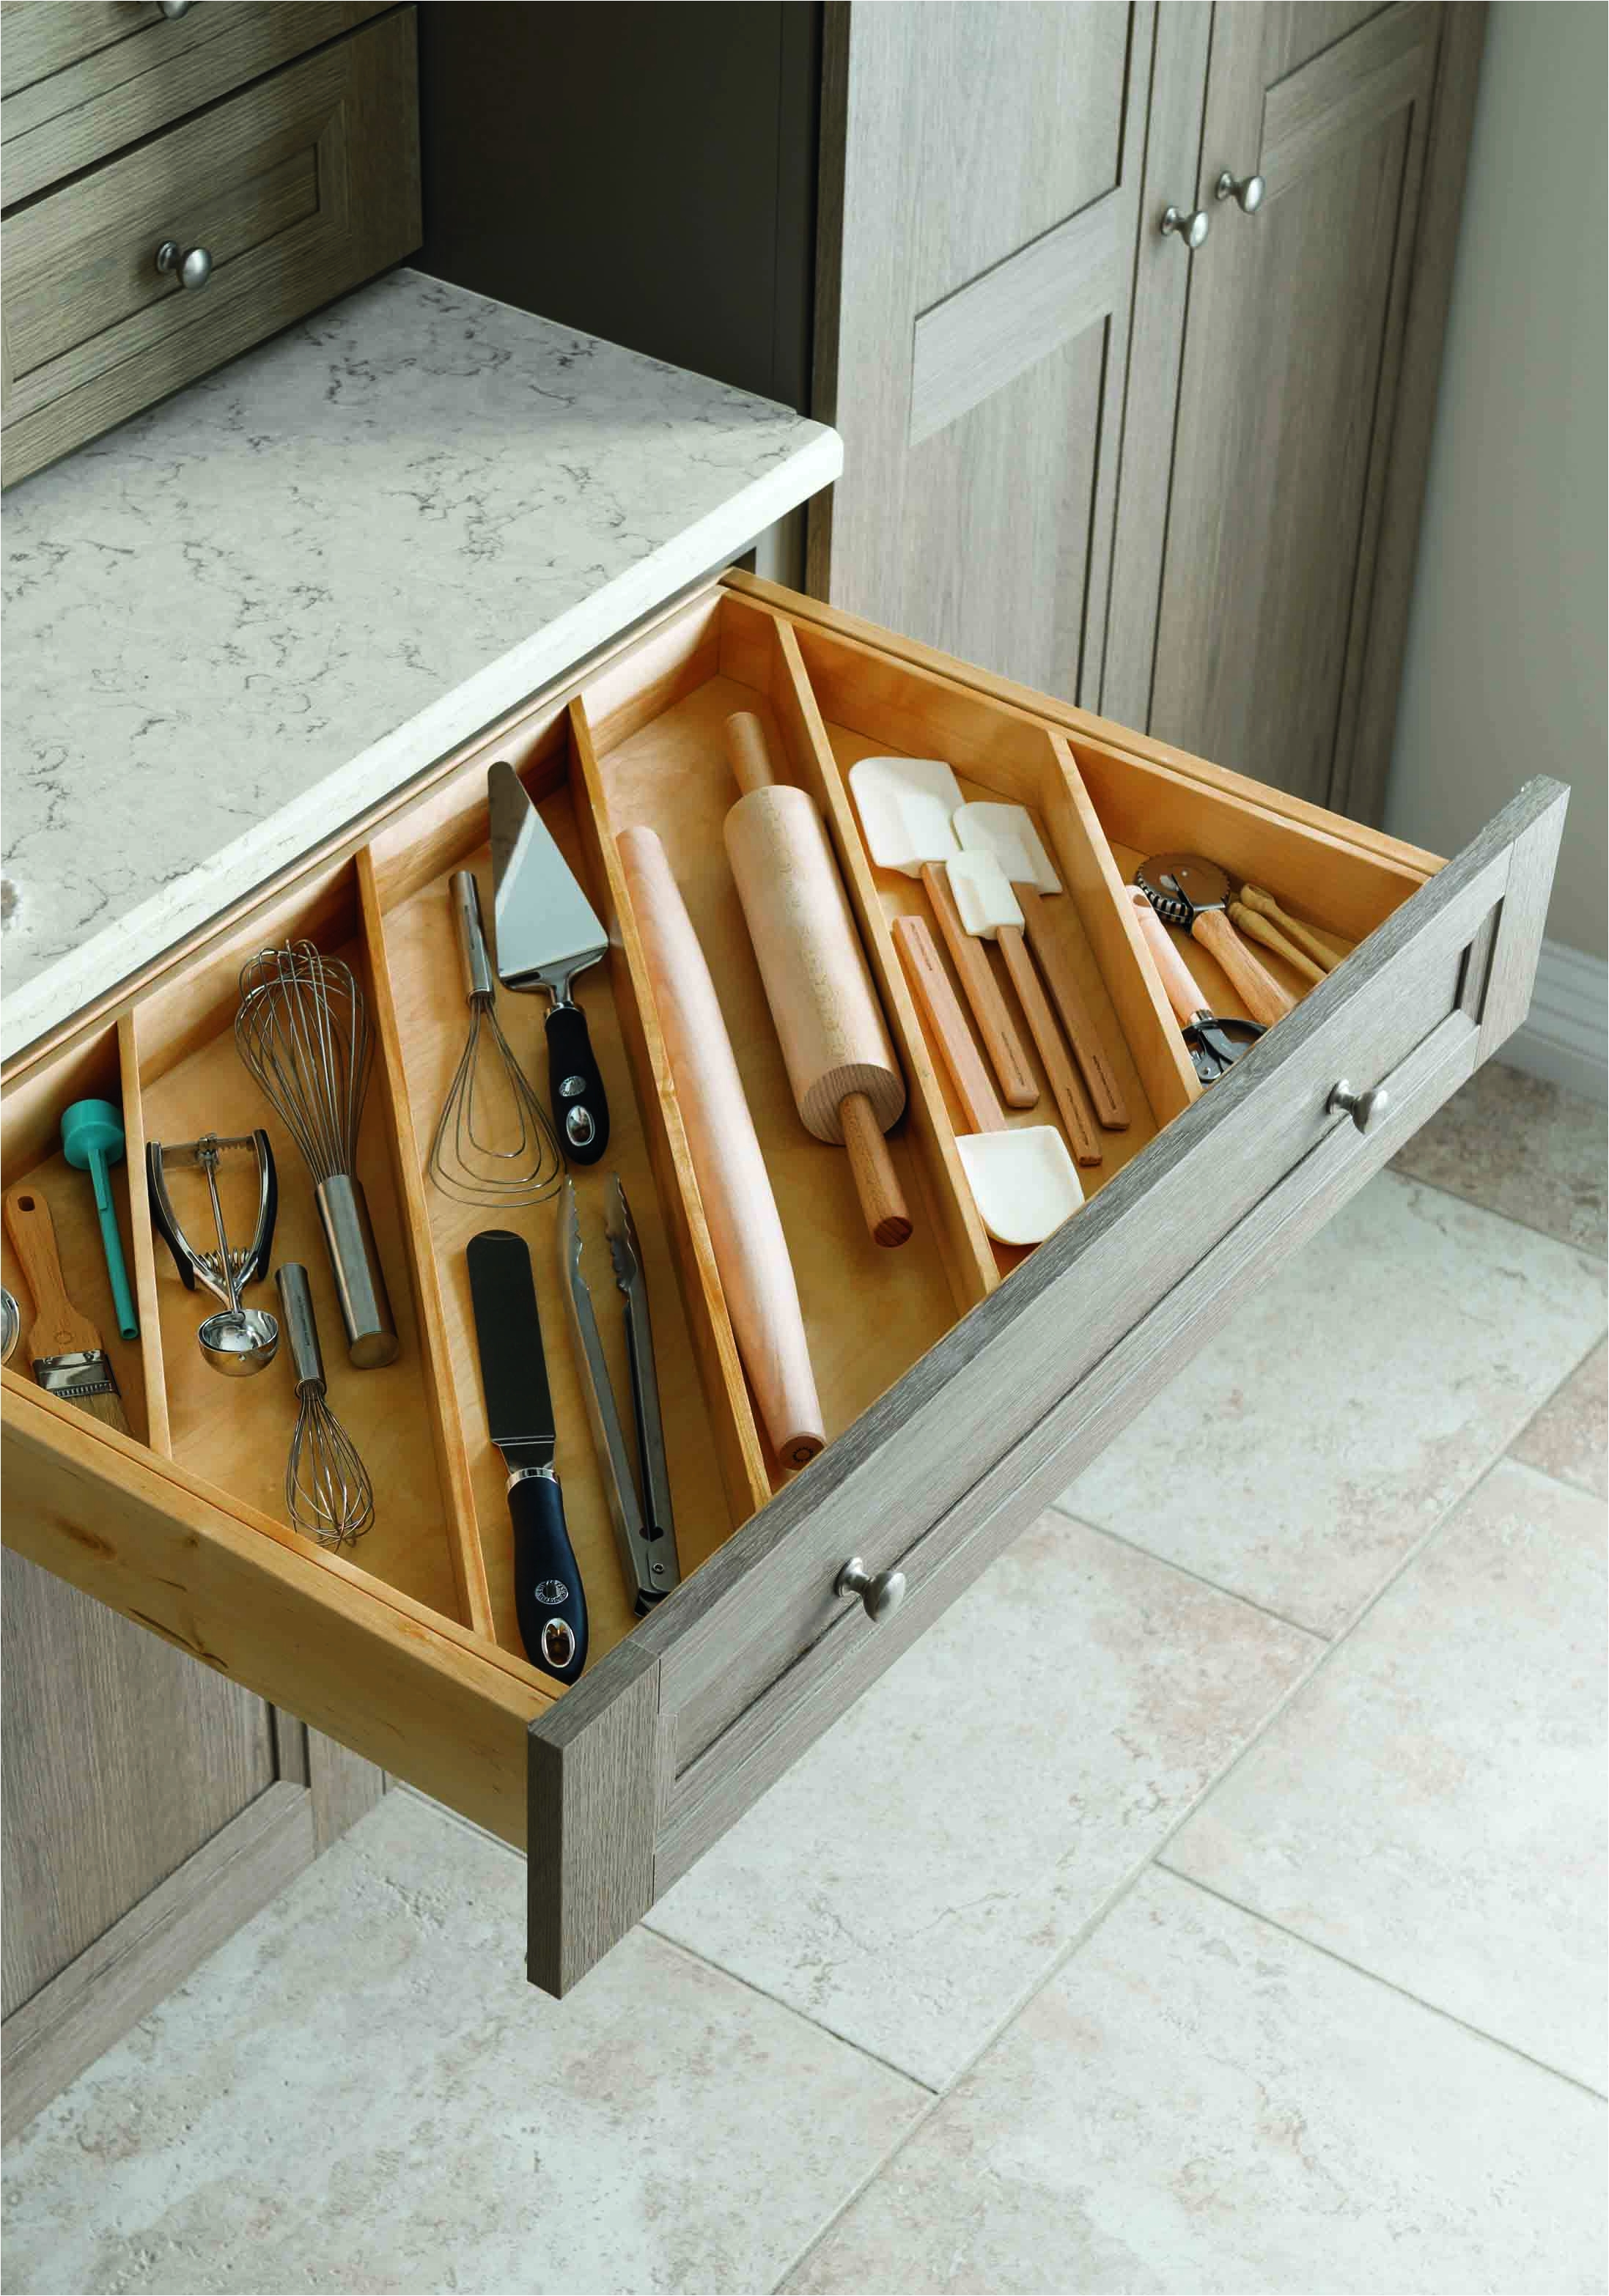 kitchen storage tip store your utensils diagonally instead of flat in vertical or horizontal slots a diagonal insert makes a smarter more efficient use